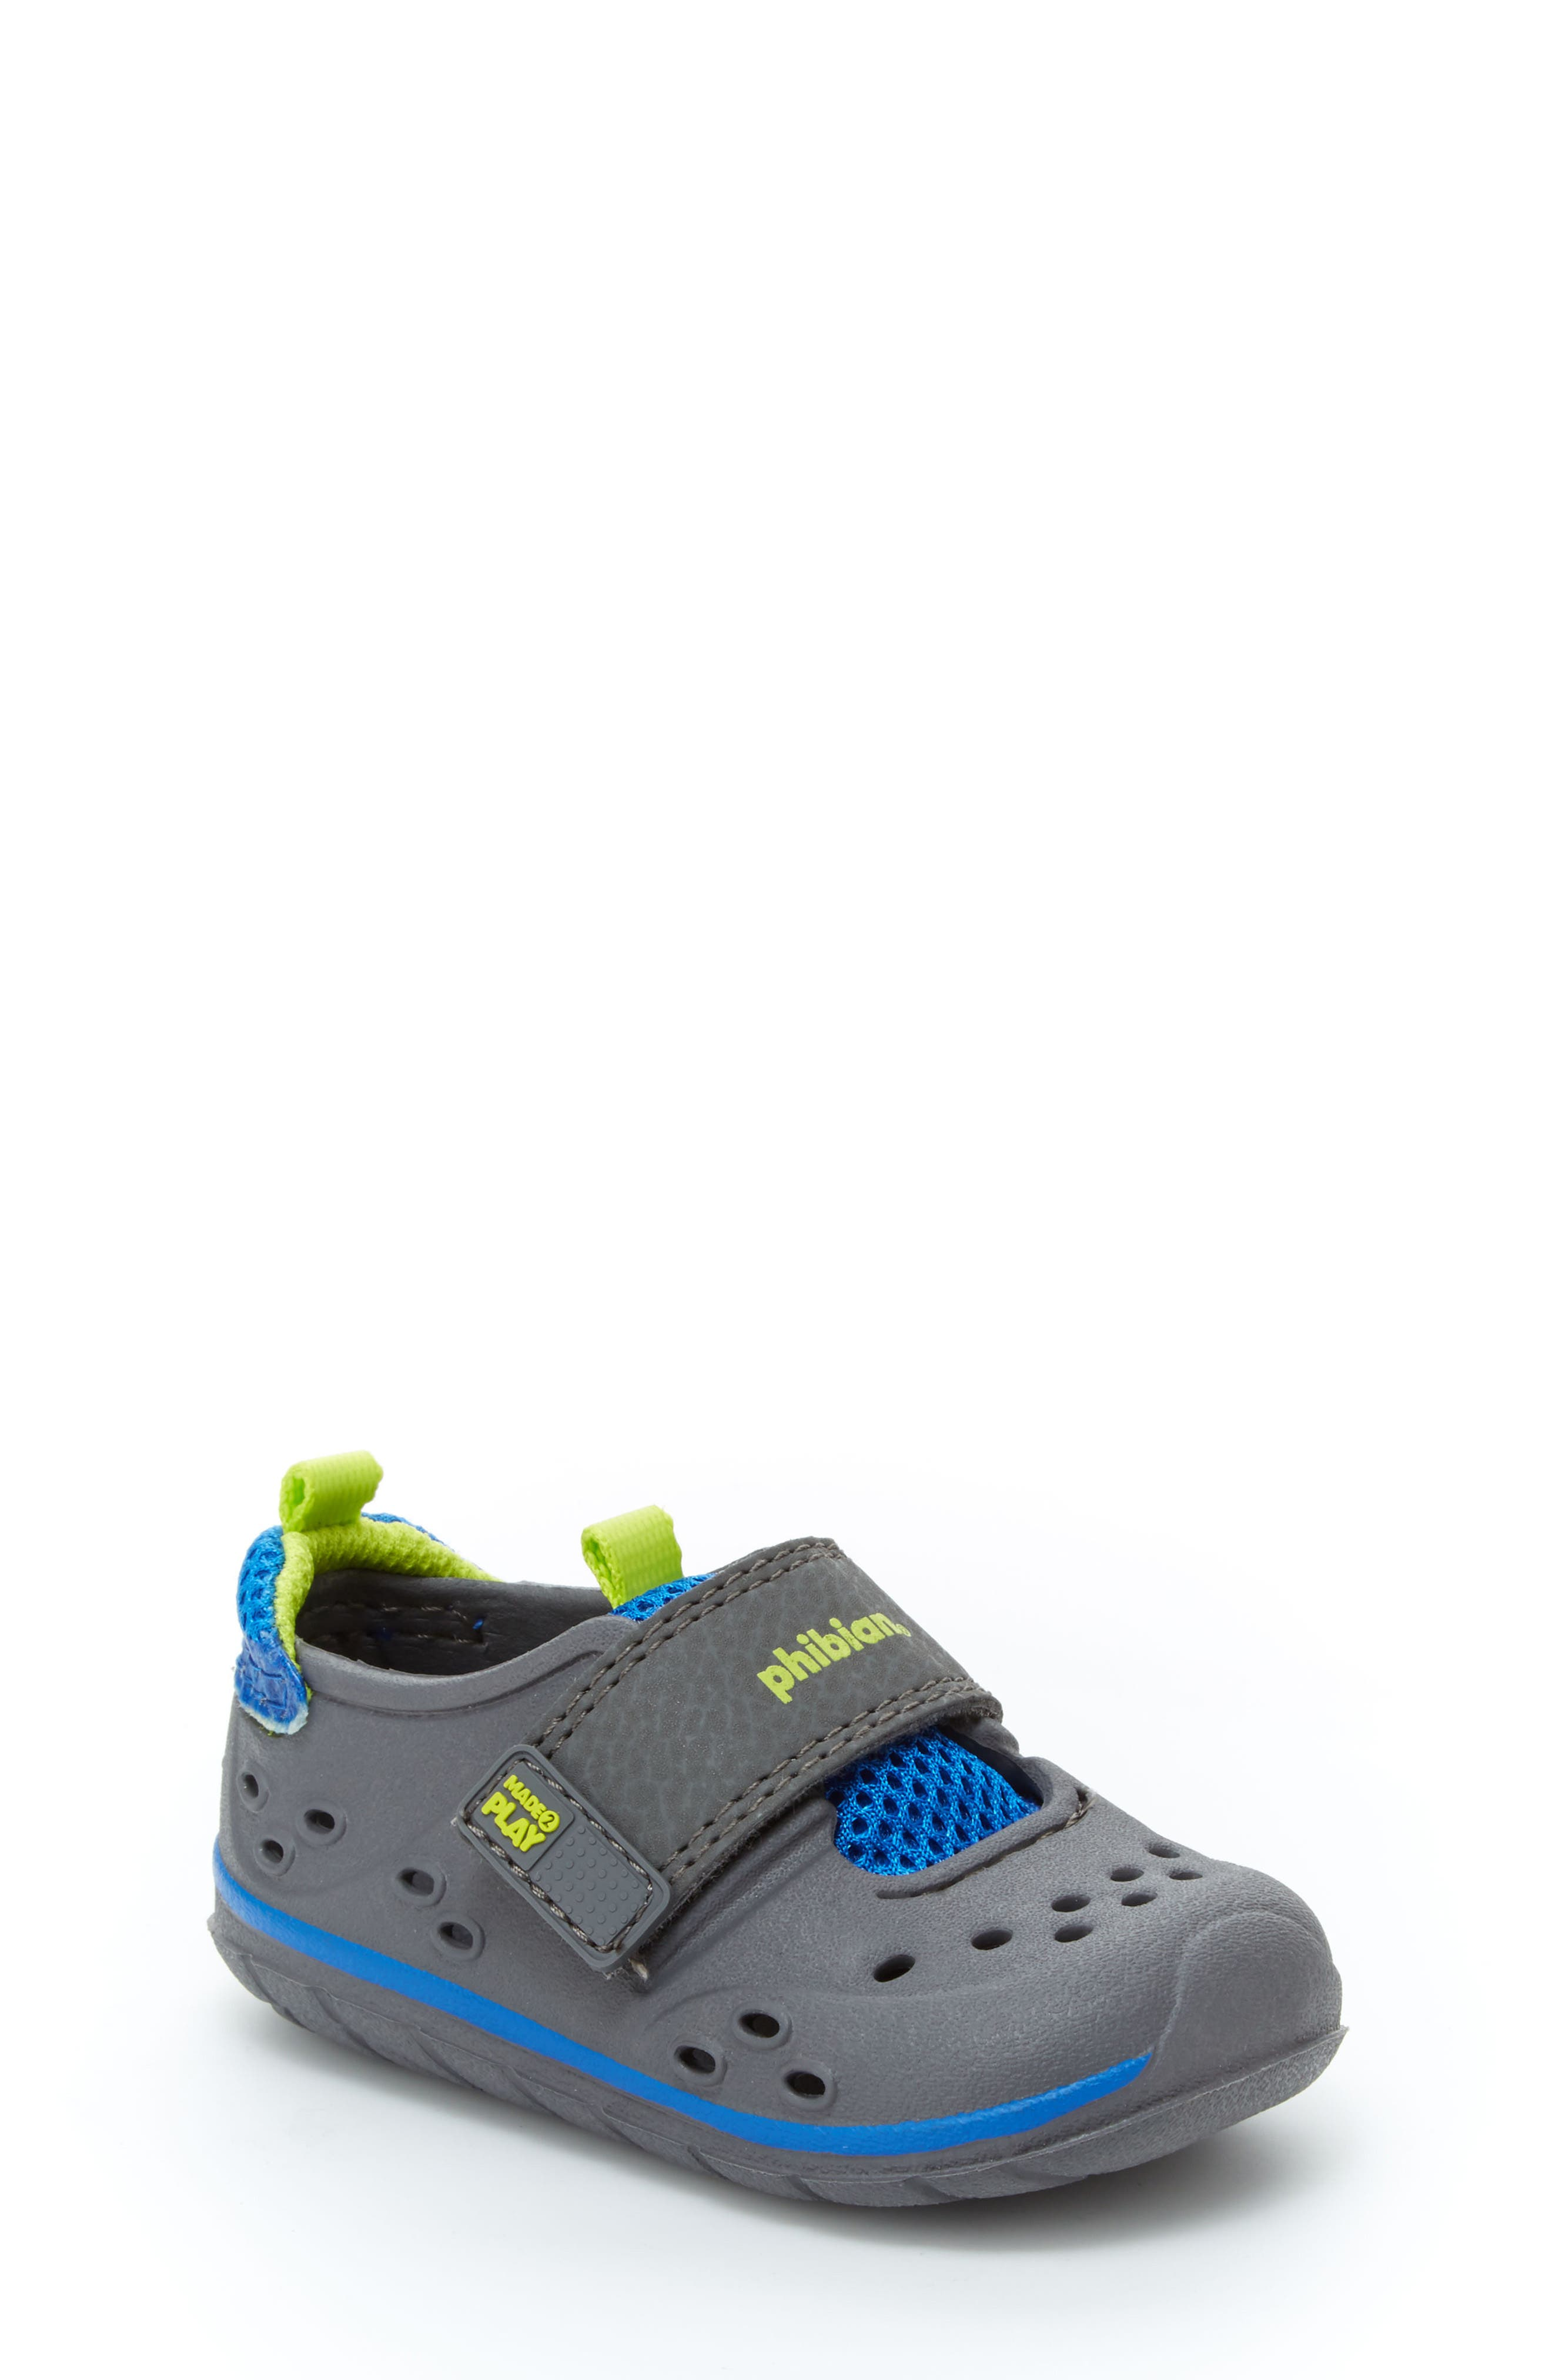 Made2Play<sup>®</sup> Phibian Sneaker,                         Main,                         color, GREY/ GREY